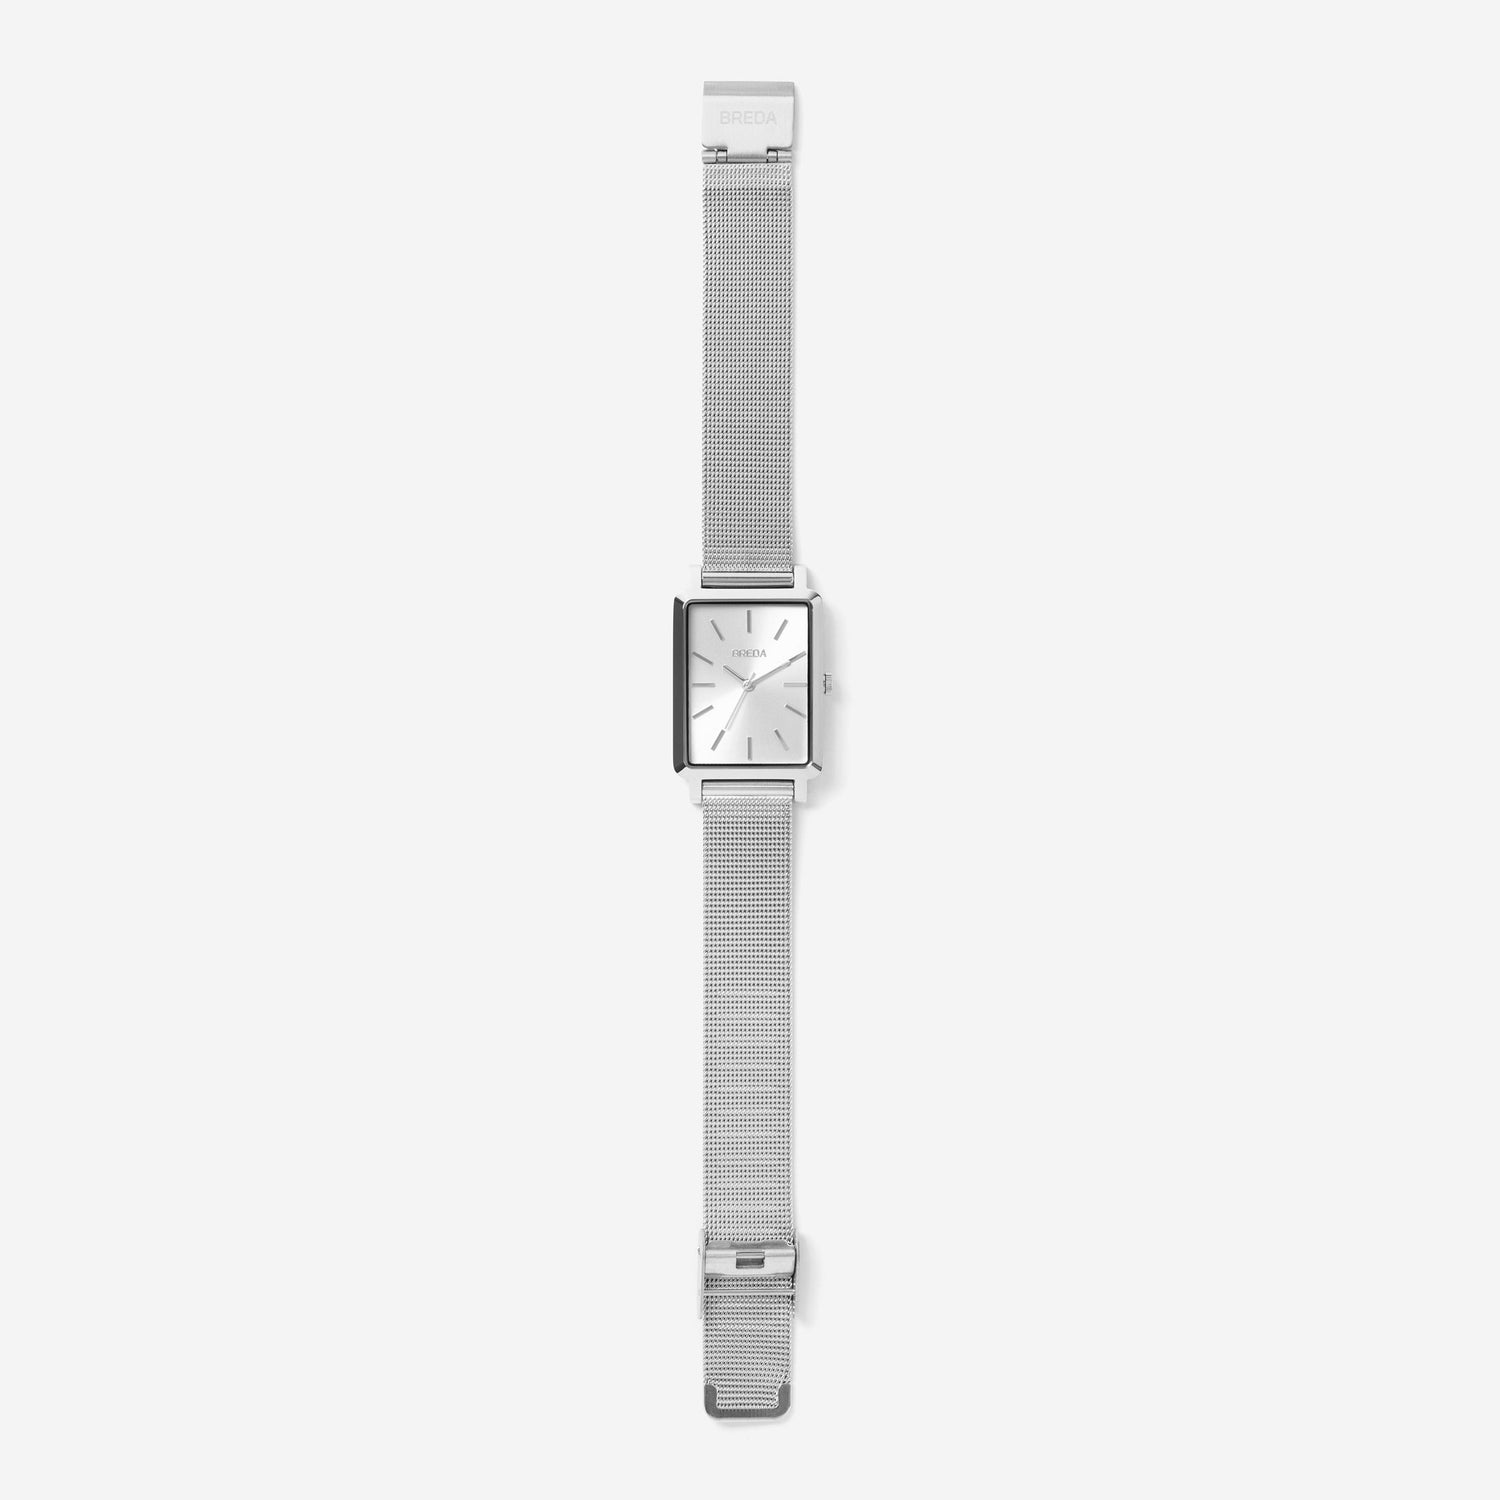 breda-baer-1729g-silver-mesh-watch-long